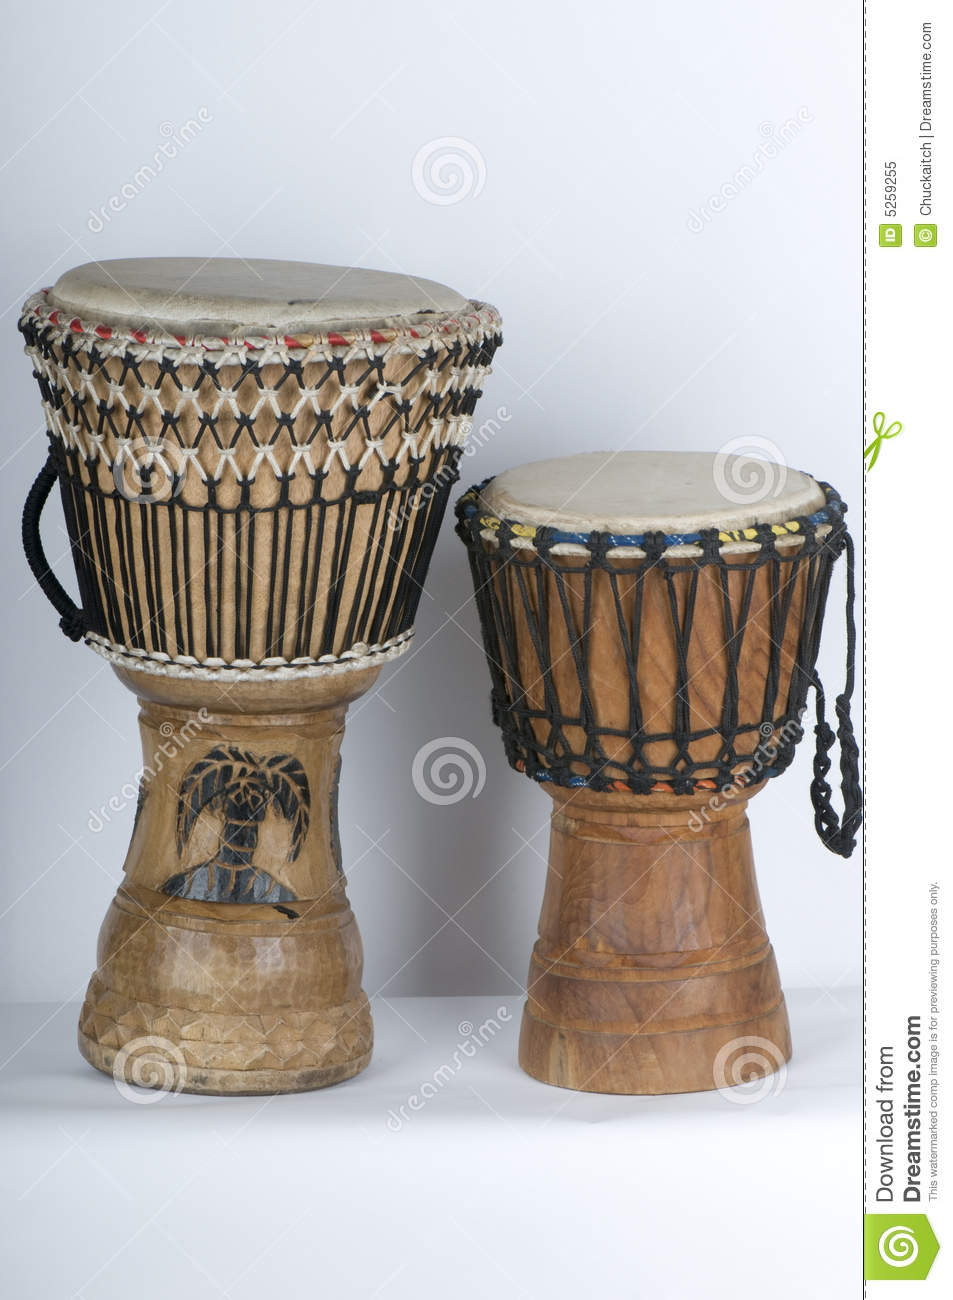 Jemba Drums stock image  Image of jemba, musical, chord